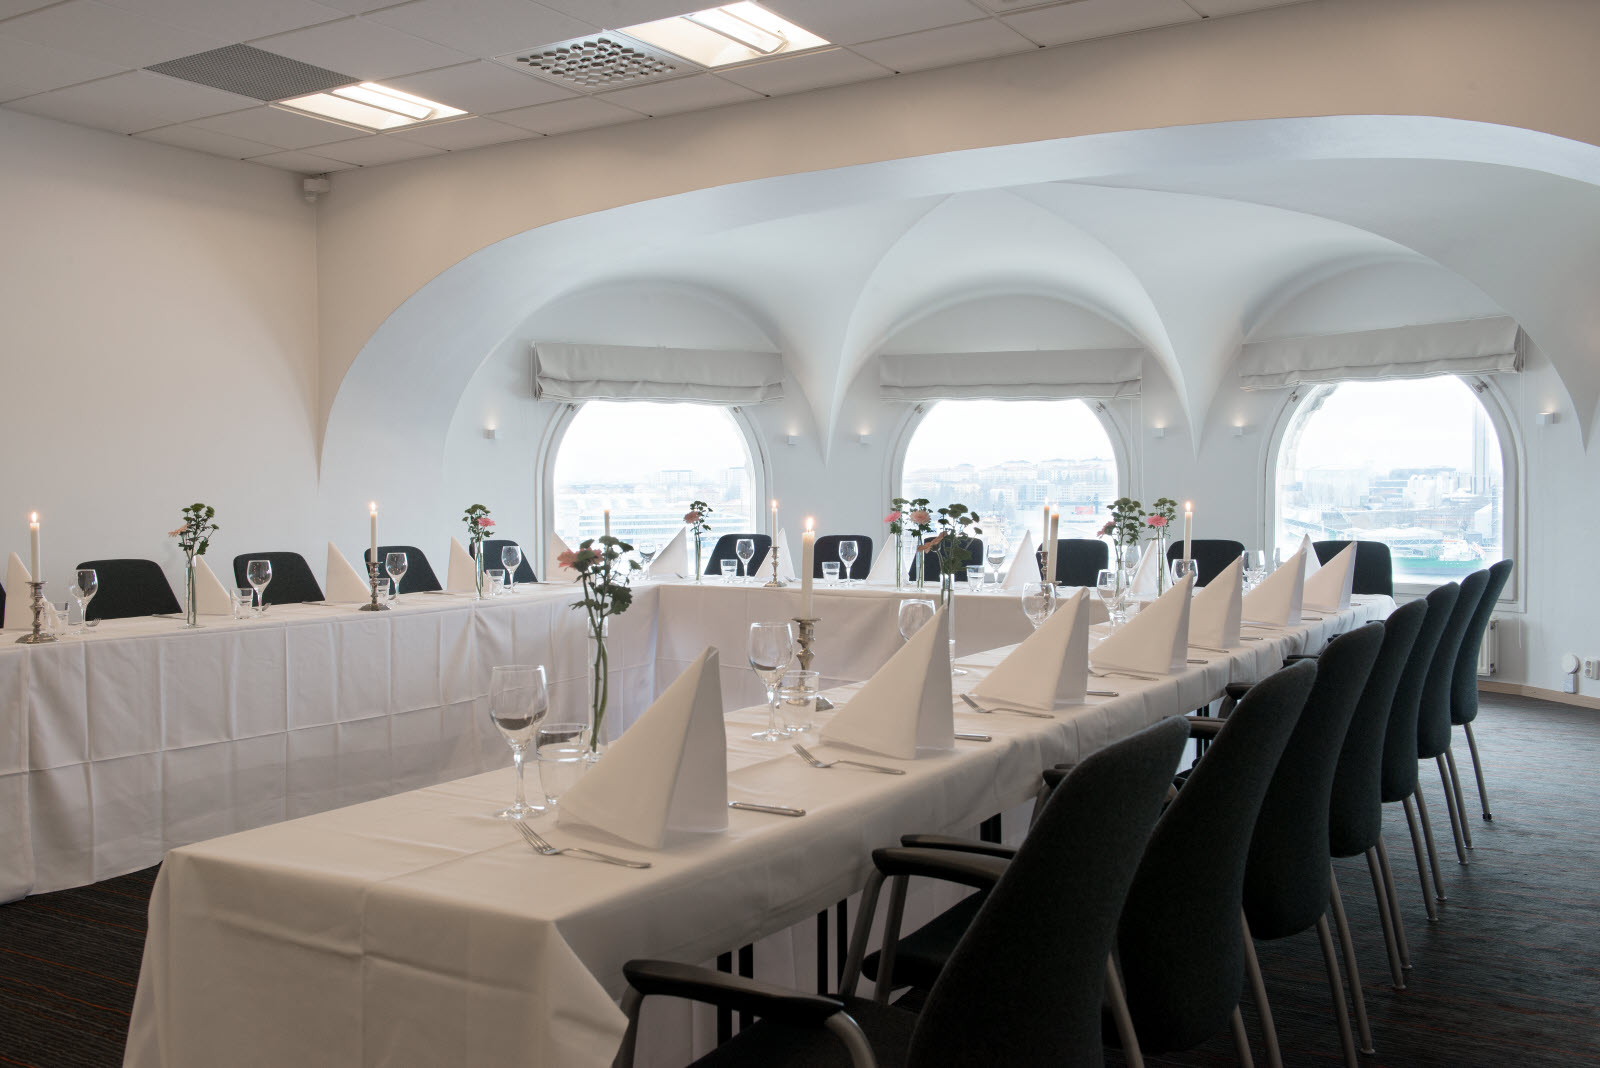 Scandic-Foresta-Conference-Room-Triton-Banquete.jpg